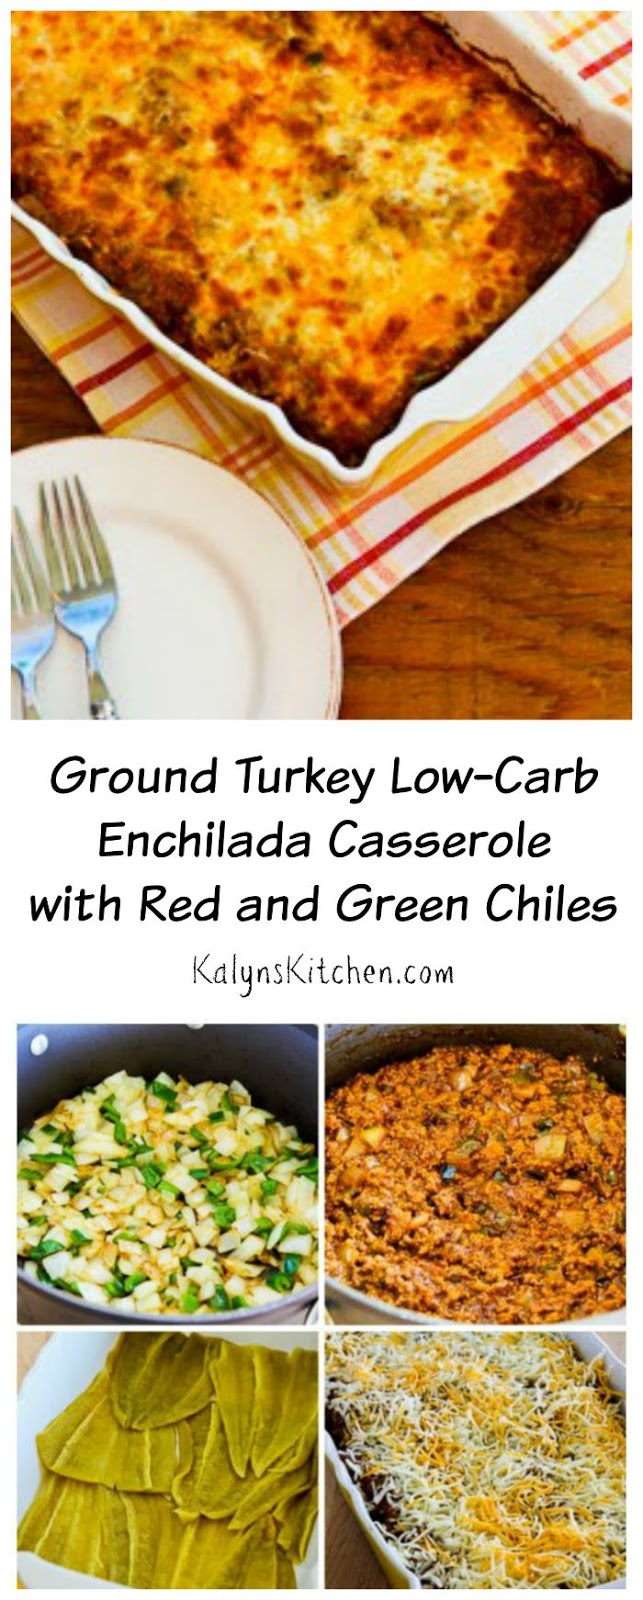 Ground Turkey Low Carb Enchilada Casserole With Red And Green Chiles Gluten Free Kalyn S